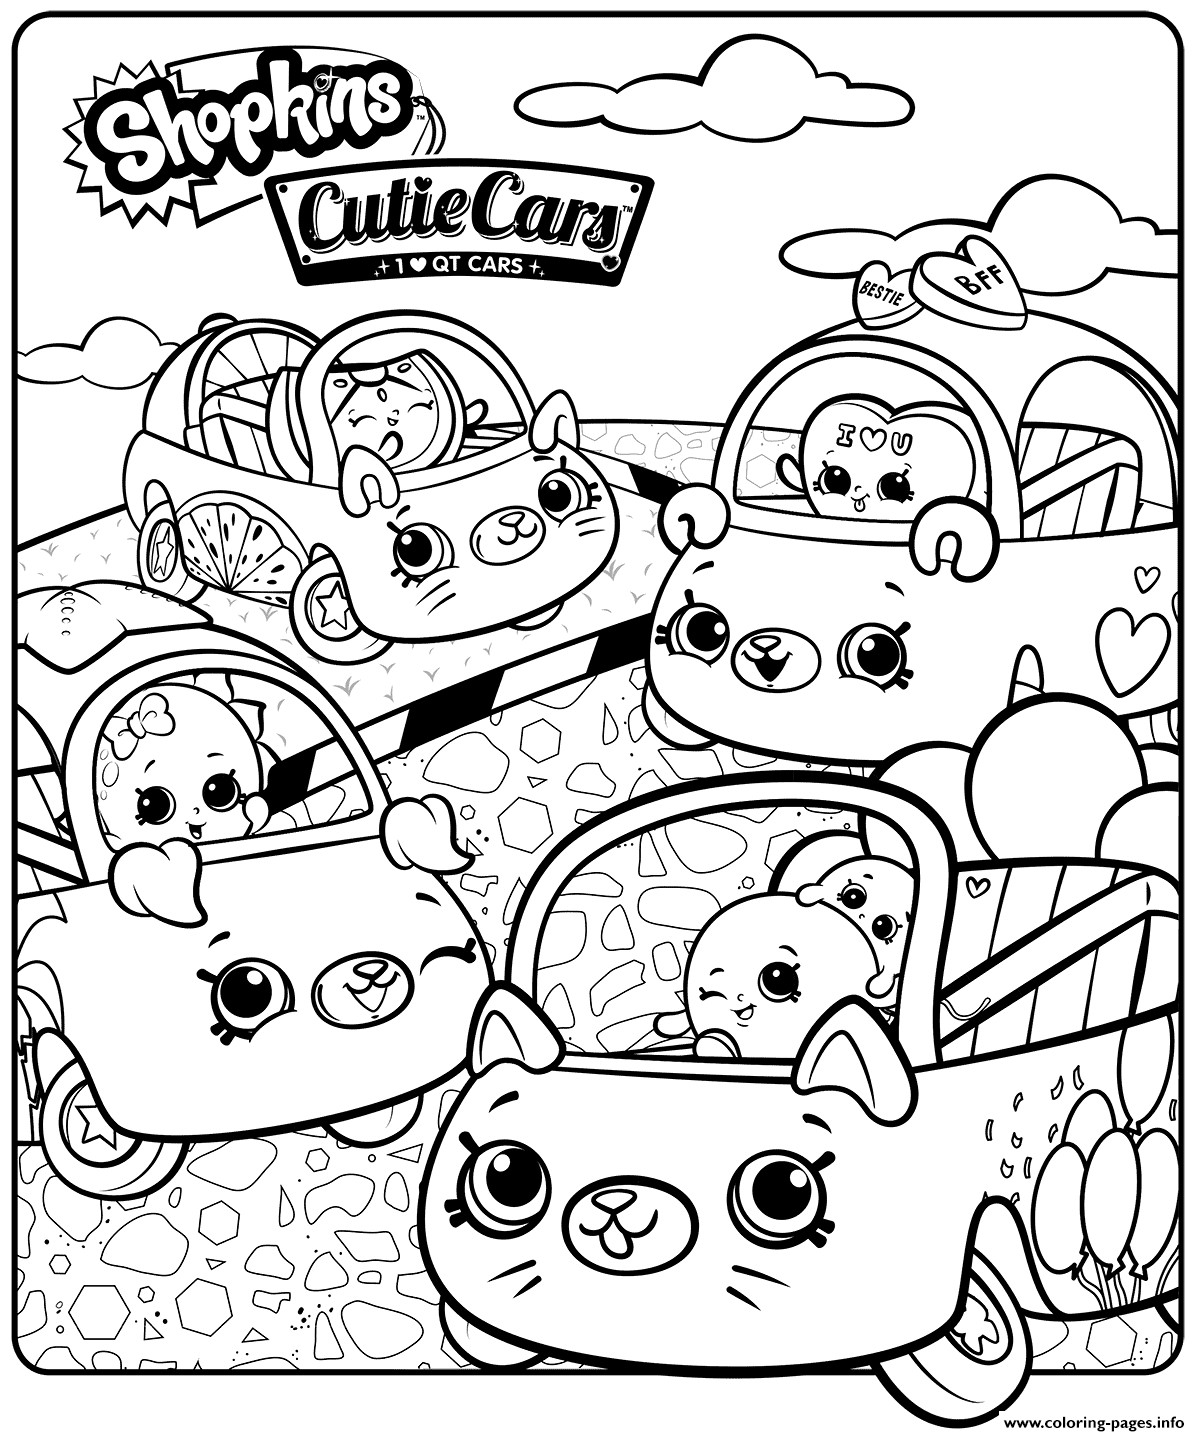 Best ideas about 1950'S Printable Coloring Pages . Save or Pin Shopkins Cutie Cars Sheet Coloring Pages Printable Now.